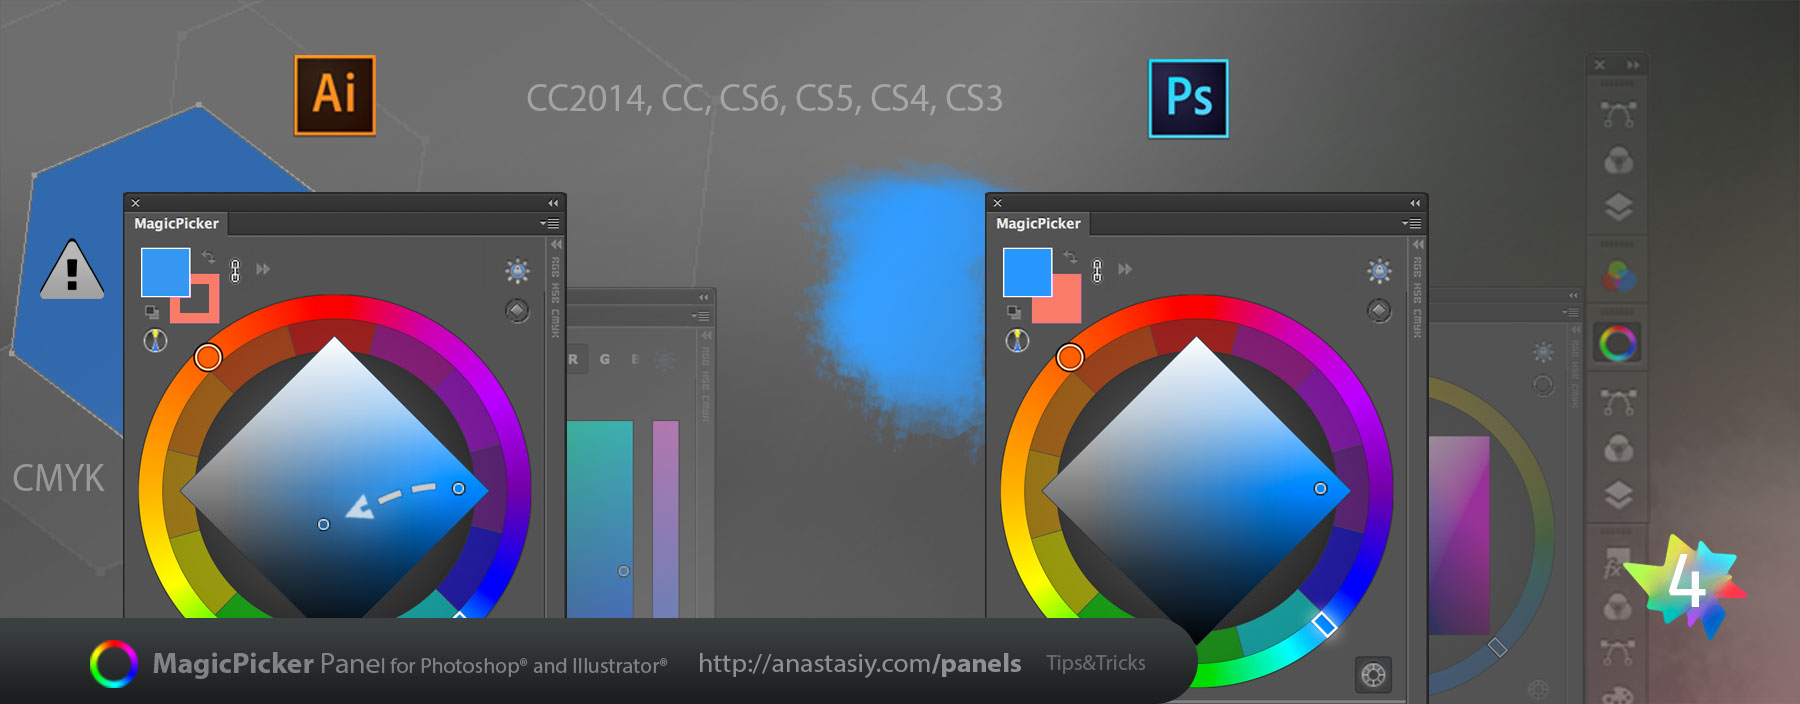 MagicPicker in Photoshop and Illustrator - different approach to color space